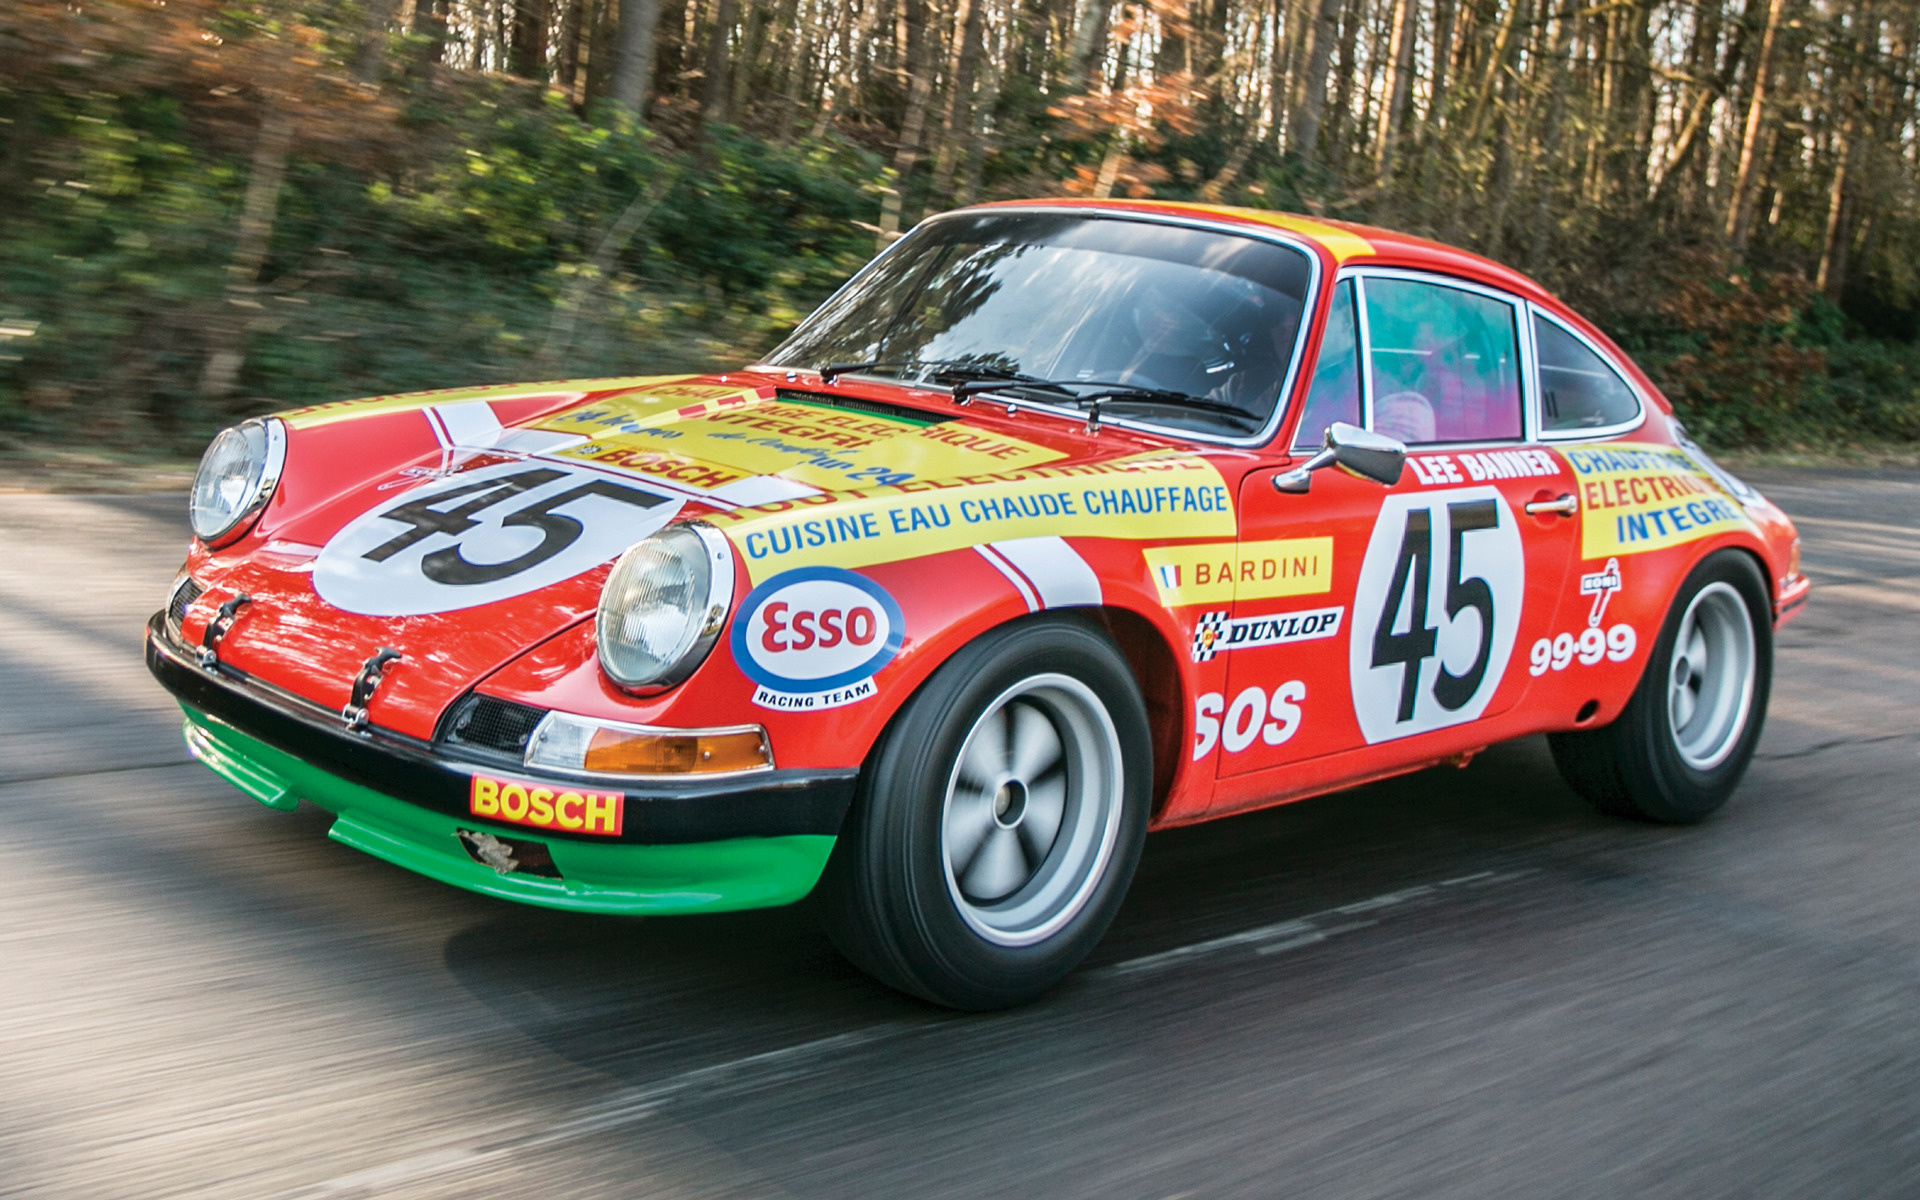 The Car 1977 >> 1969 Porsche 911 S Rally Car - Wallpapers and HD Images ...